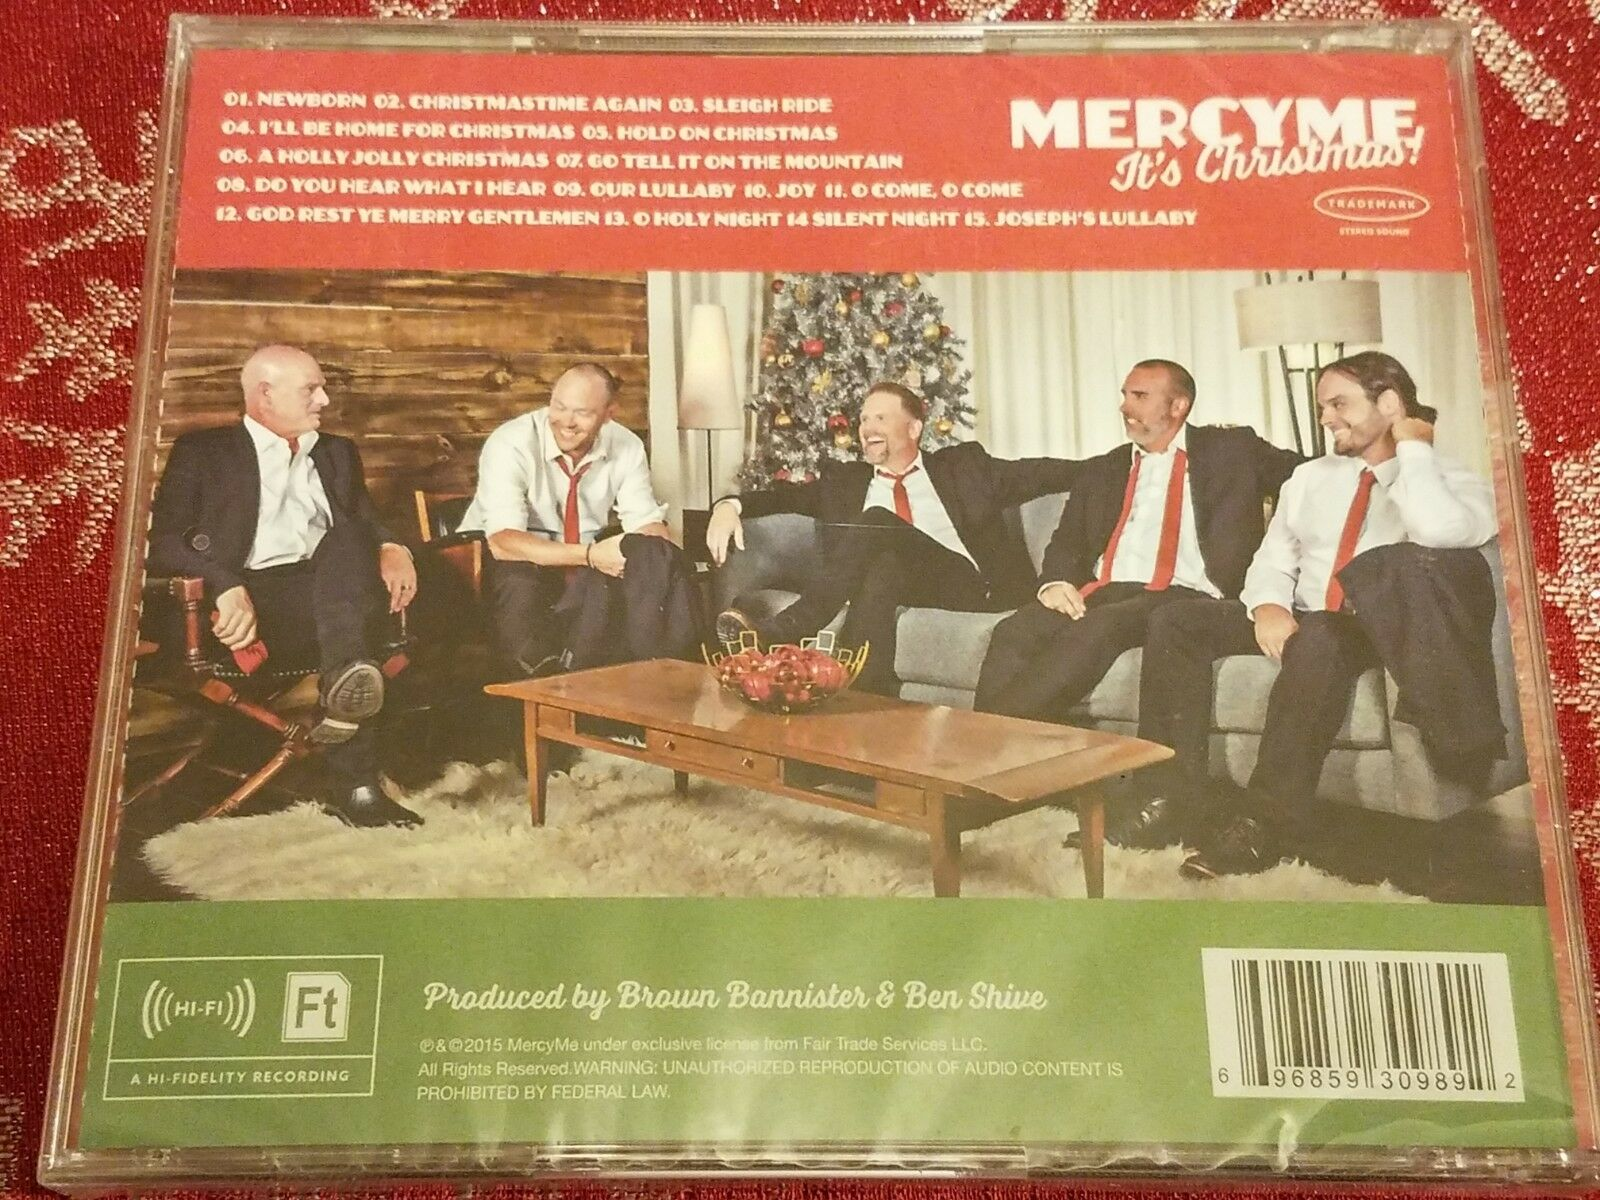 MercyMe - It's Christmas! (CD)